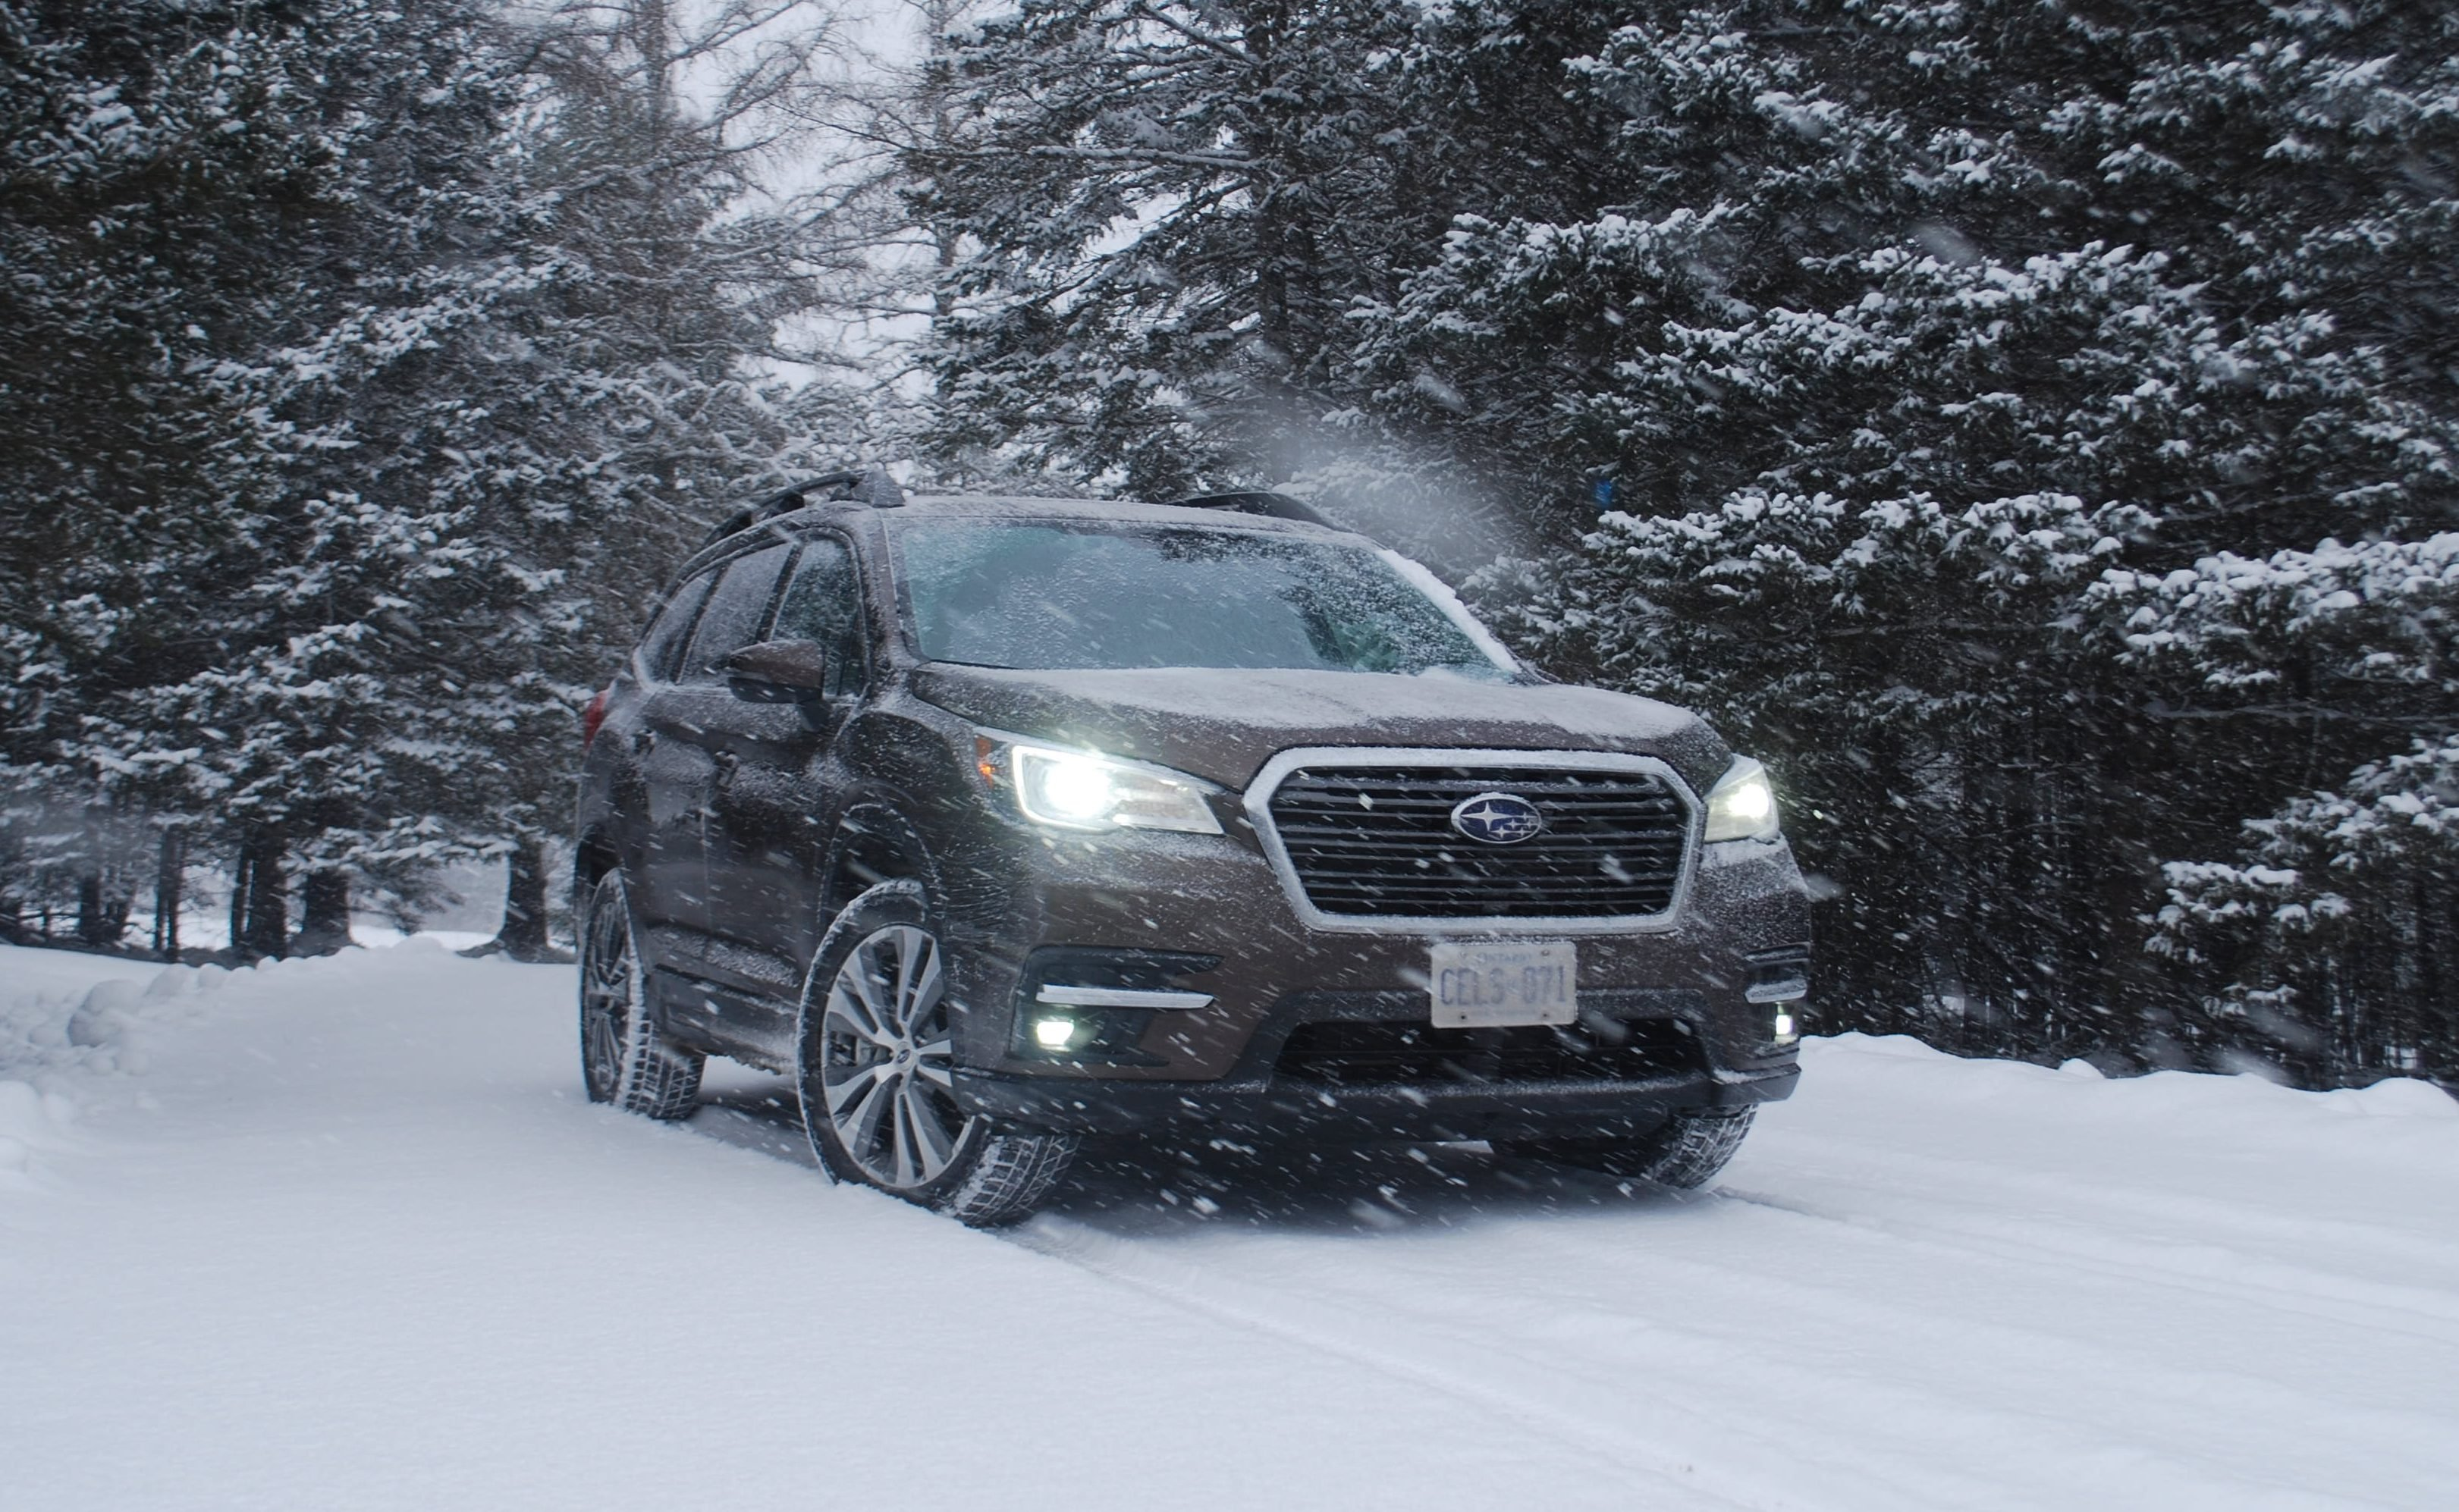 2019 Subaru Ascent Limited Review – Quirks & Quarks - The